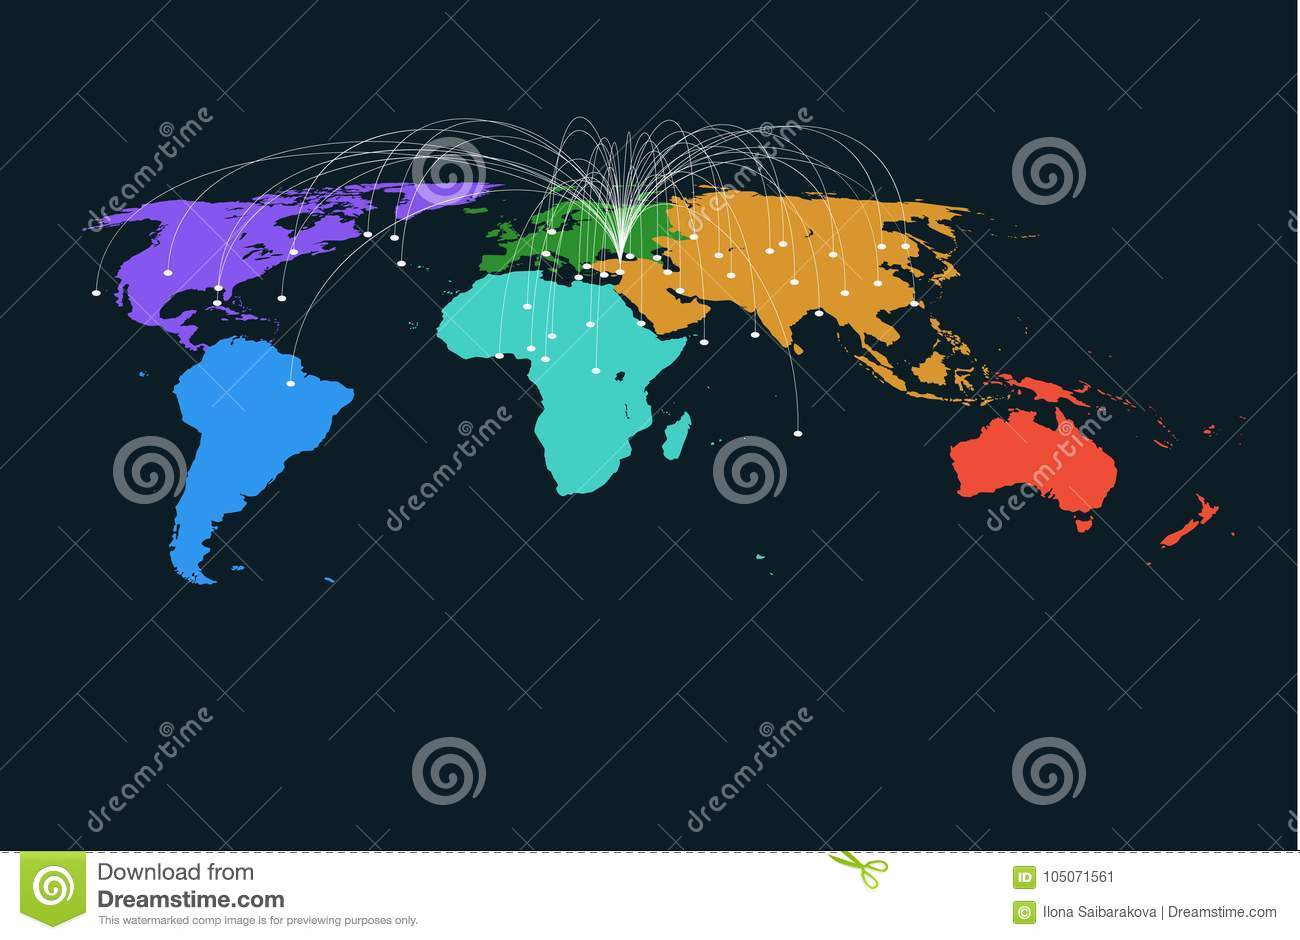 Colored region world map vector background stock vector colored region world map vector background royalty free stock photo gumiabroncs Choice Image